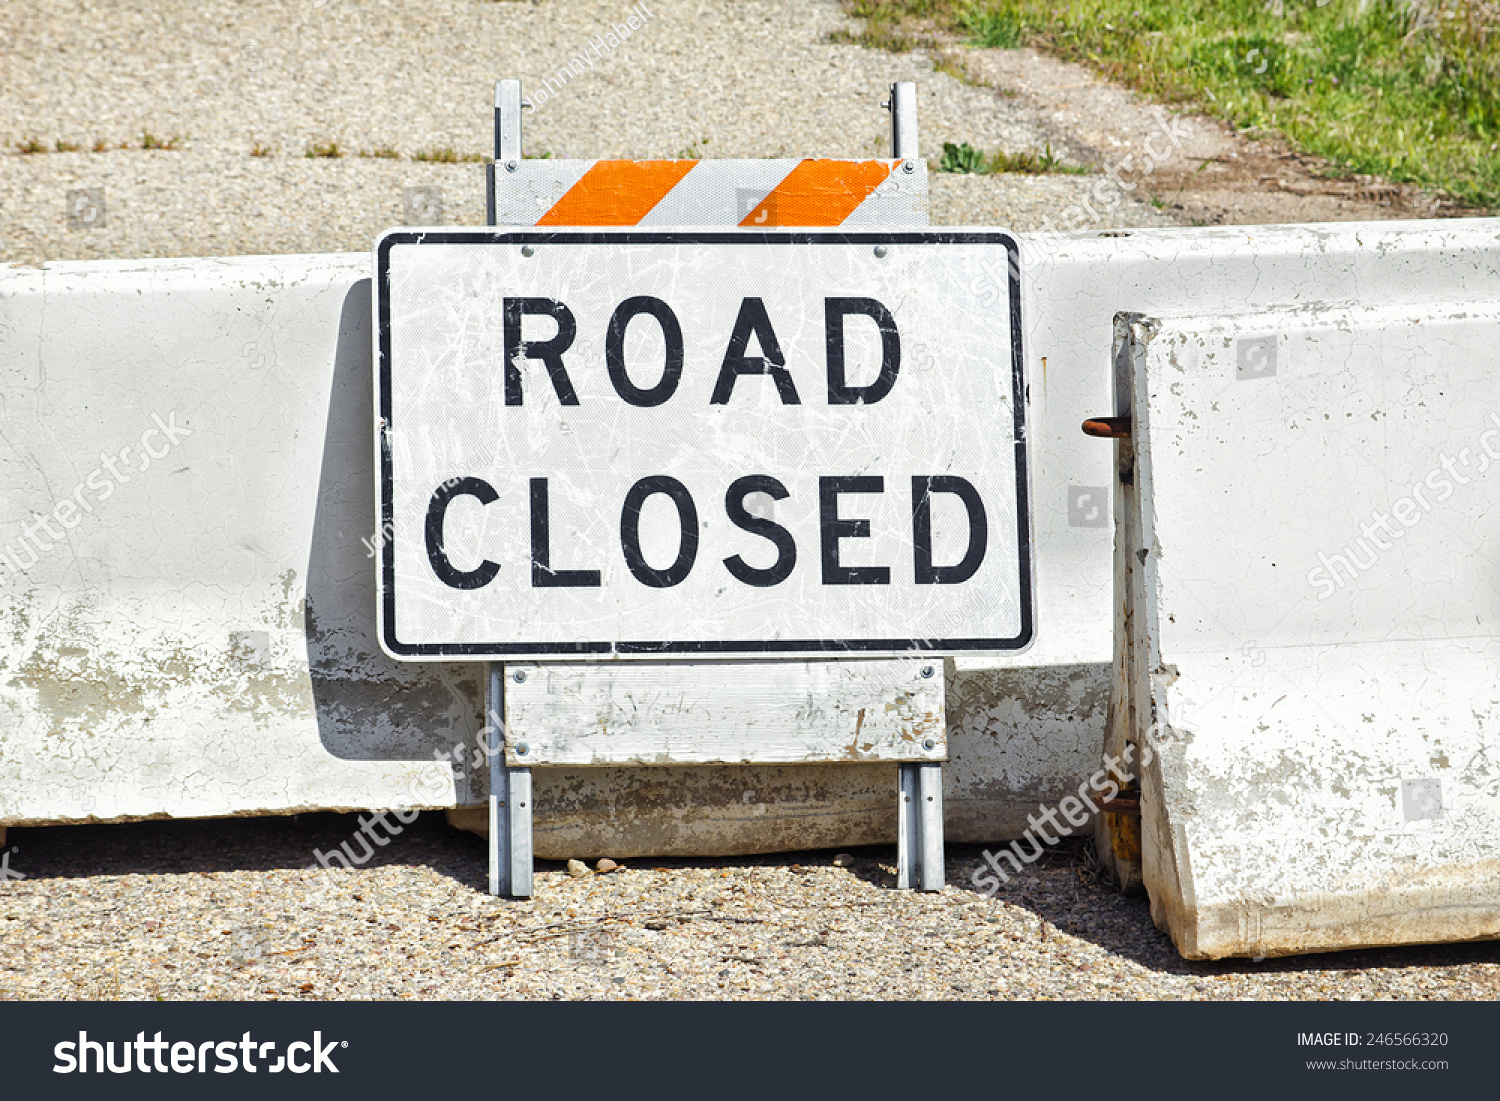 Road sign concrete barriers used show stock photo